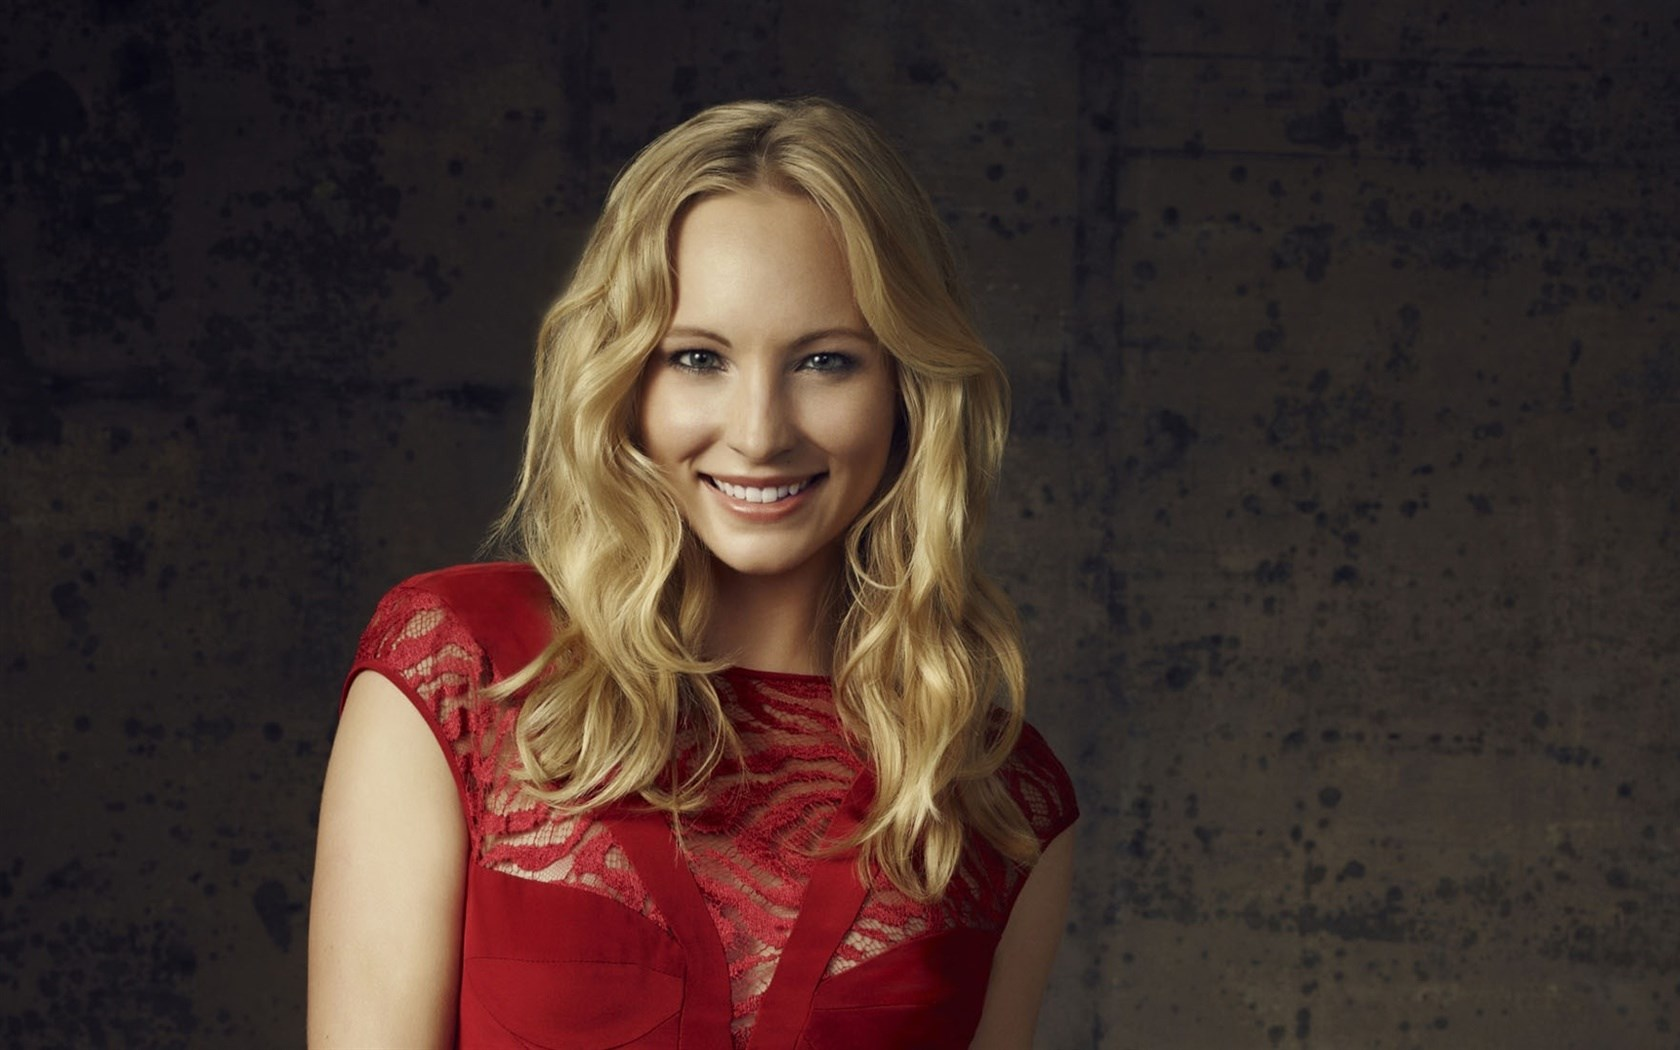 1680x1050 - Candice Accola Wallpapers 10